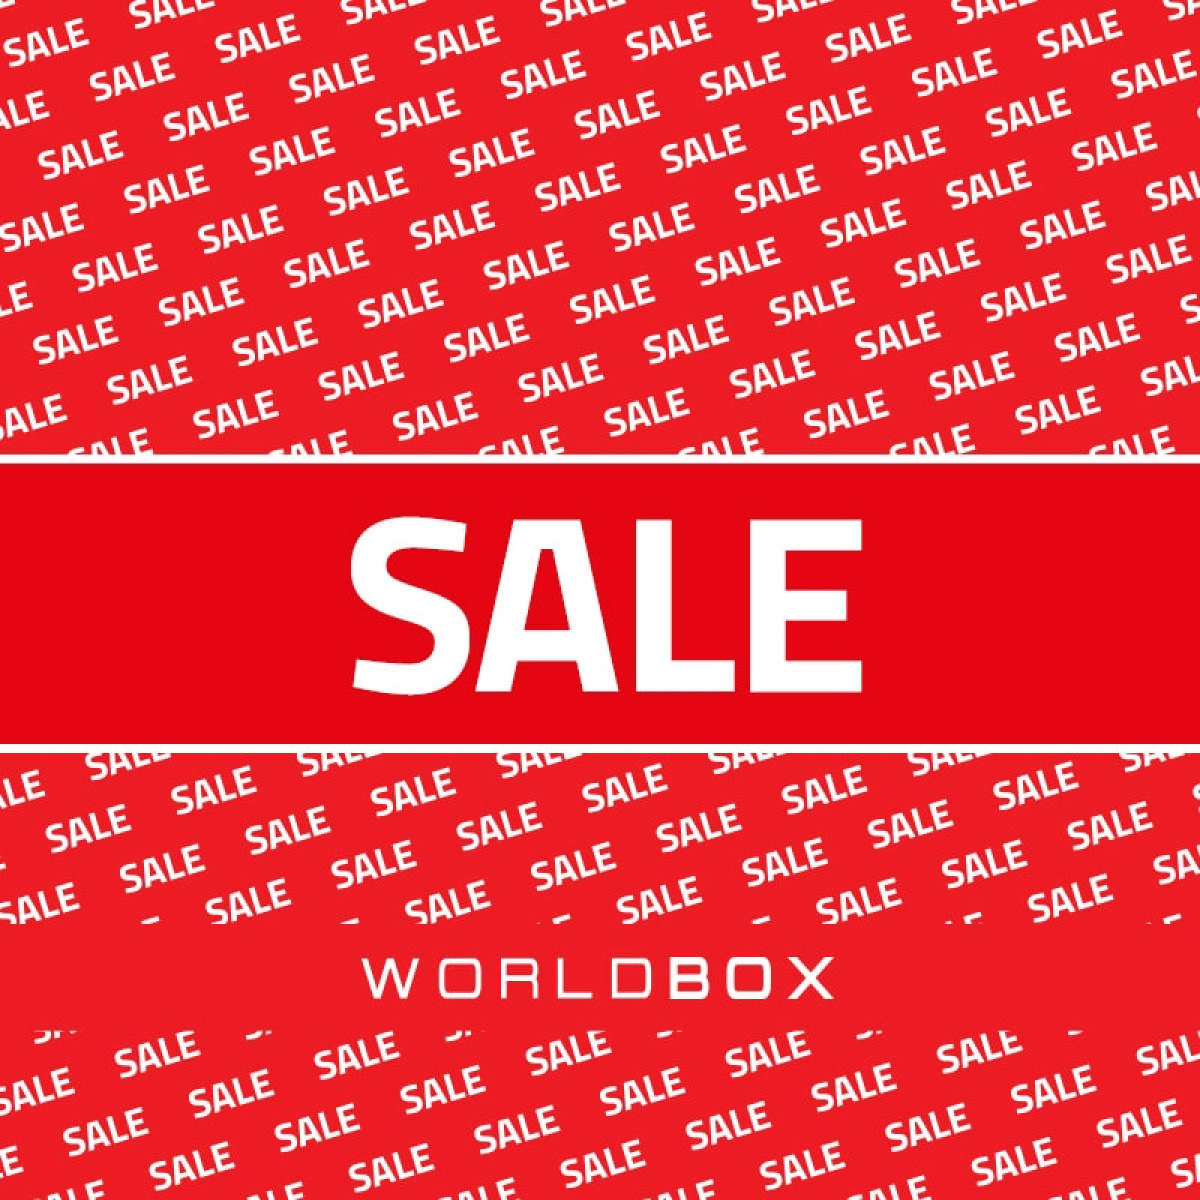 SUMMER SALE W WORLDBOX